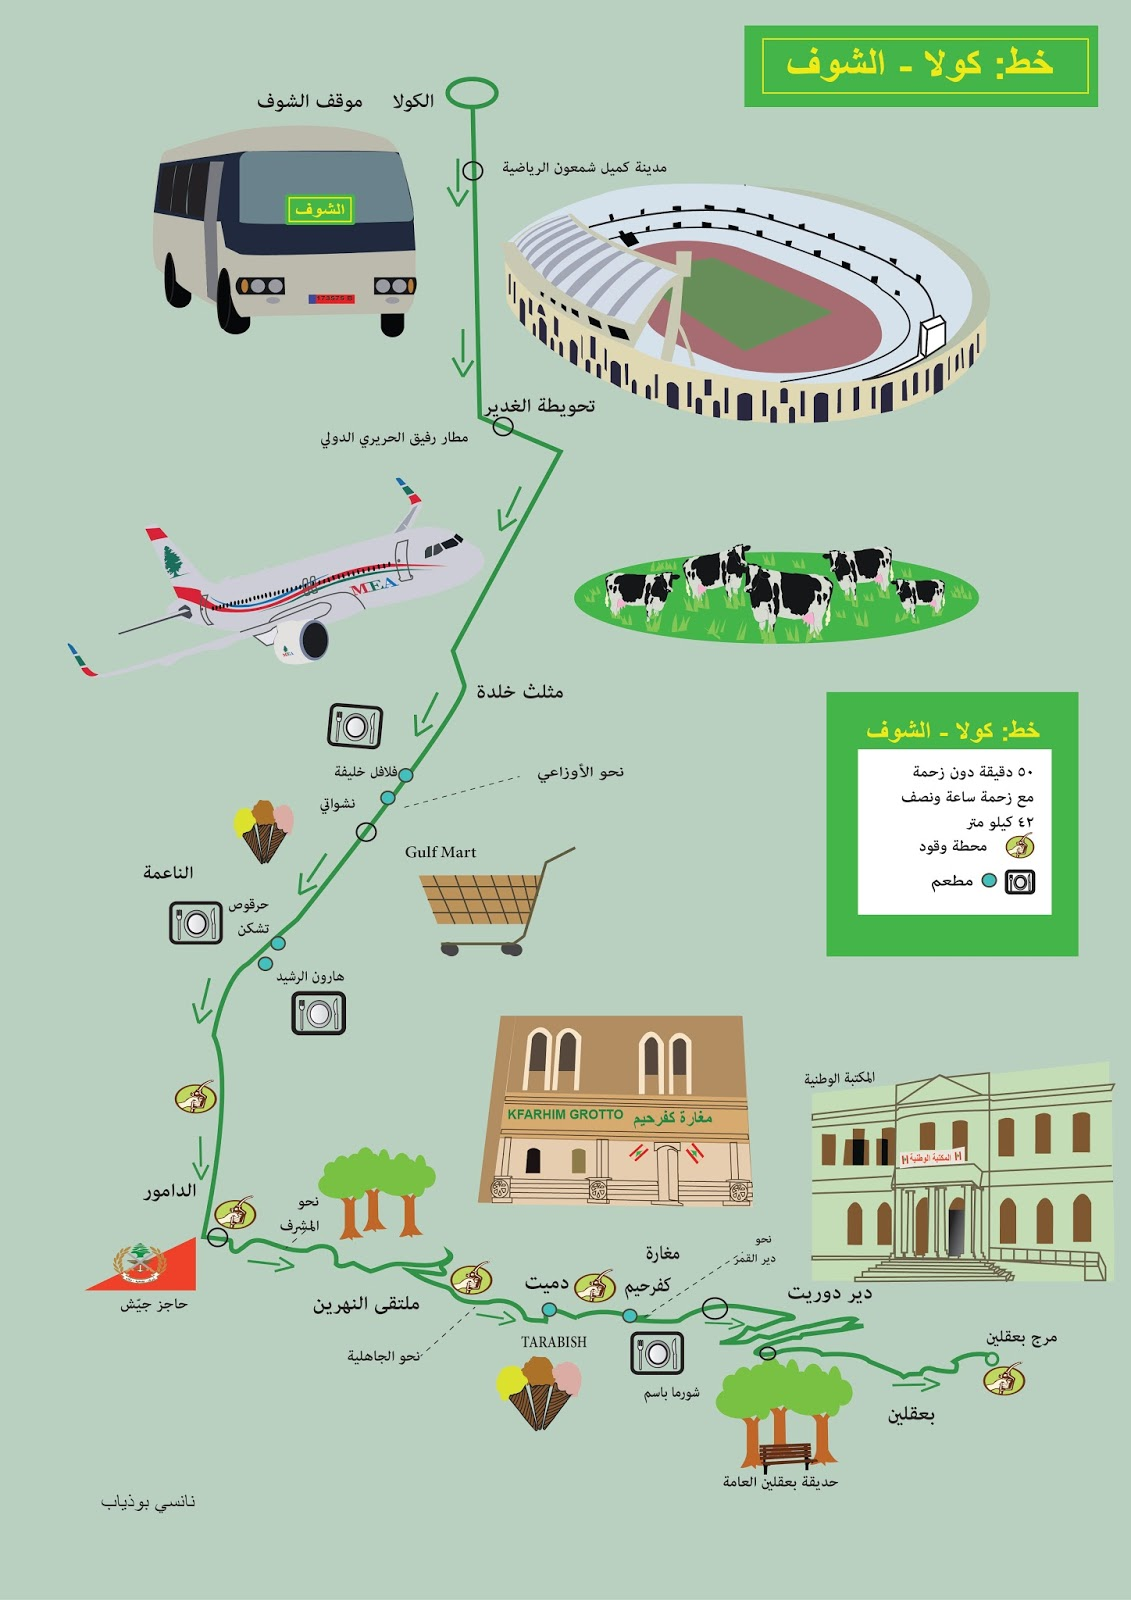 bus map project lebanon Nancy Bou Diab